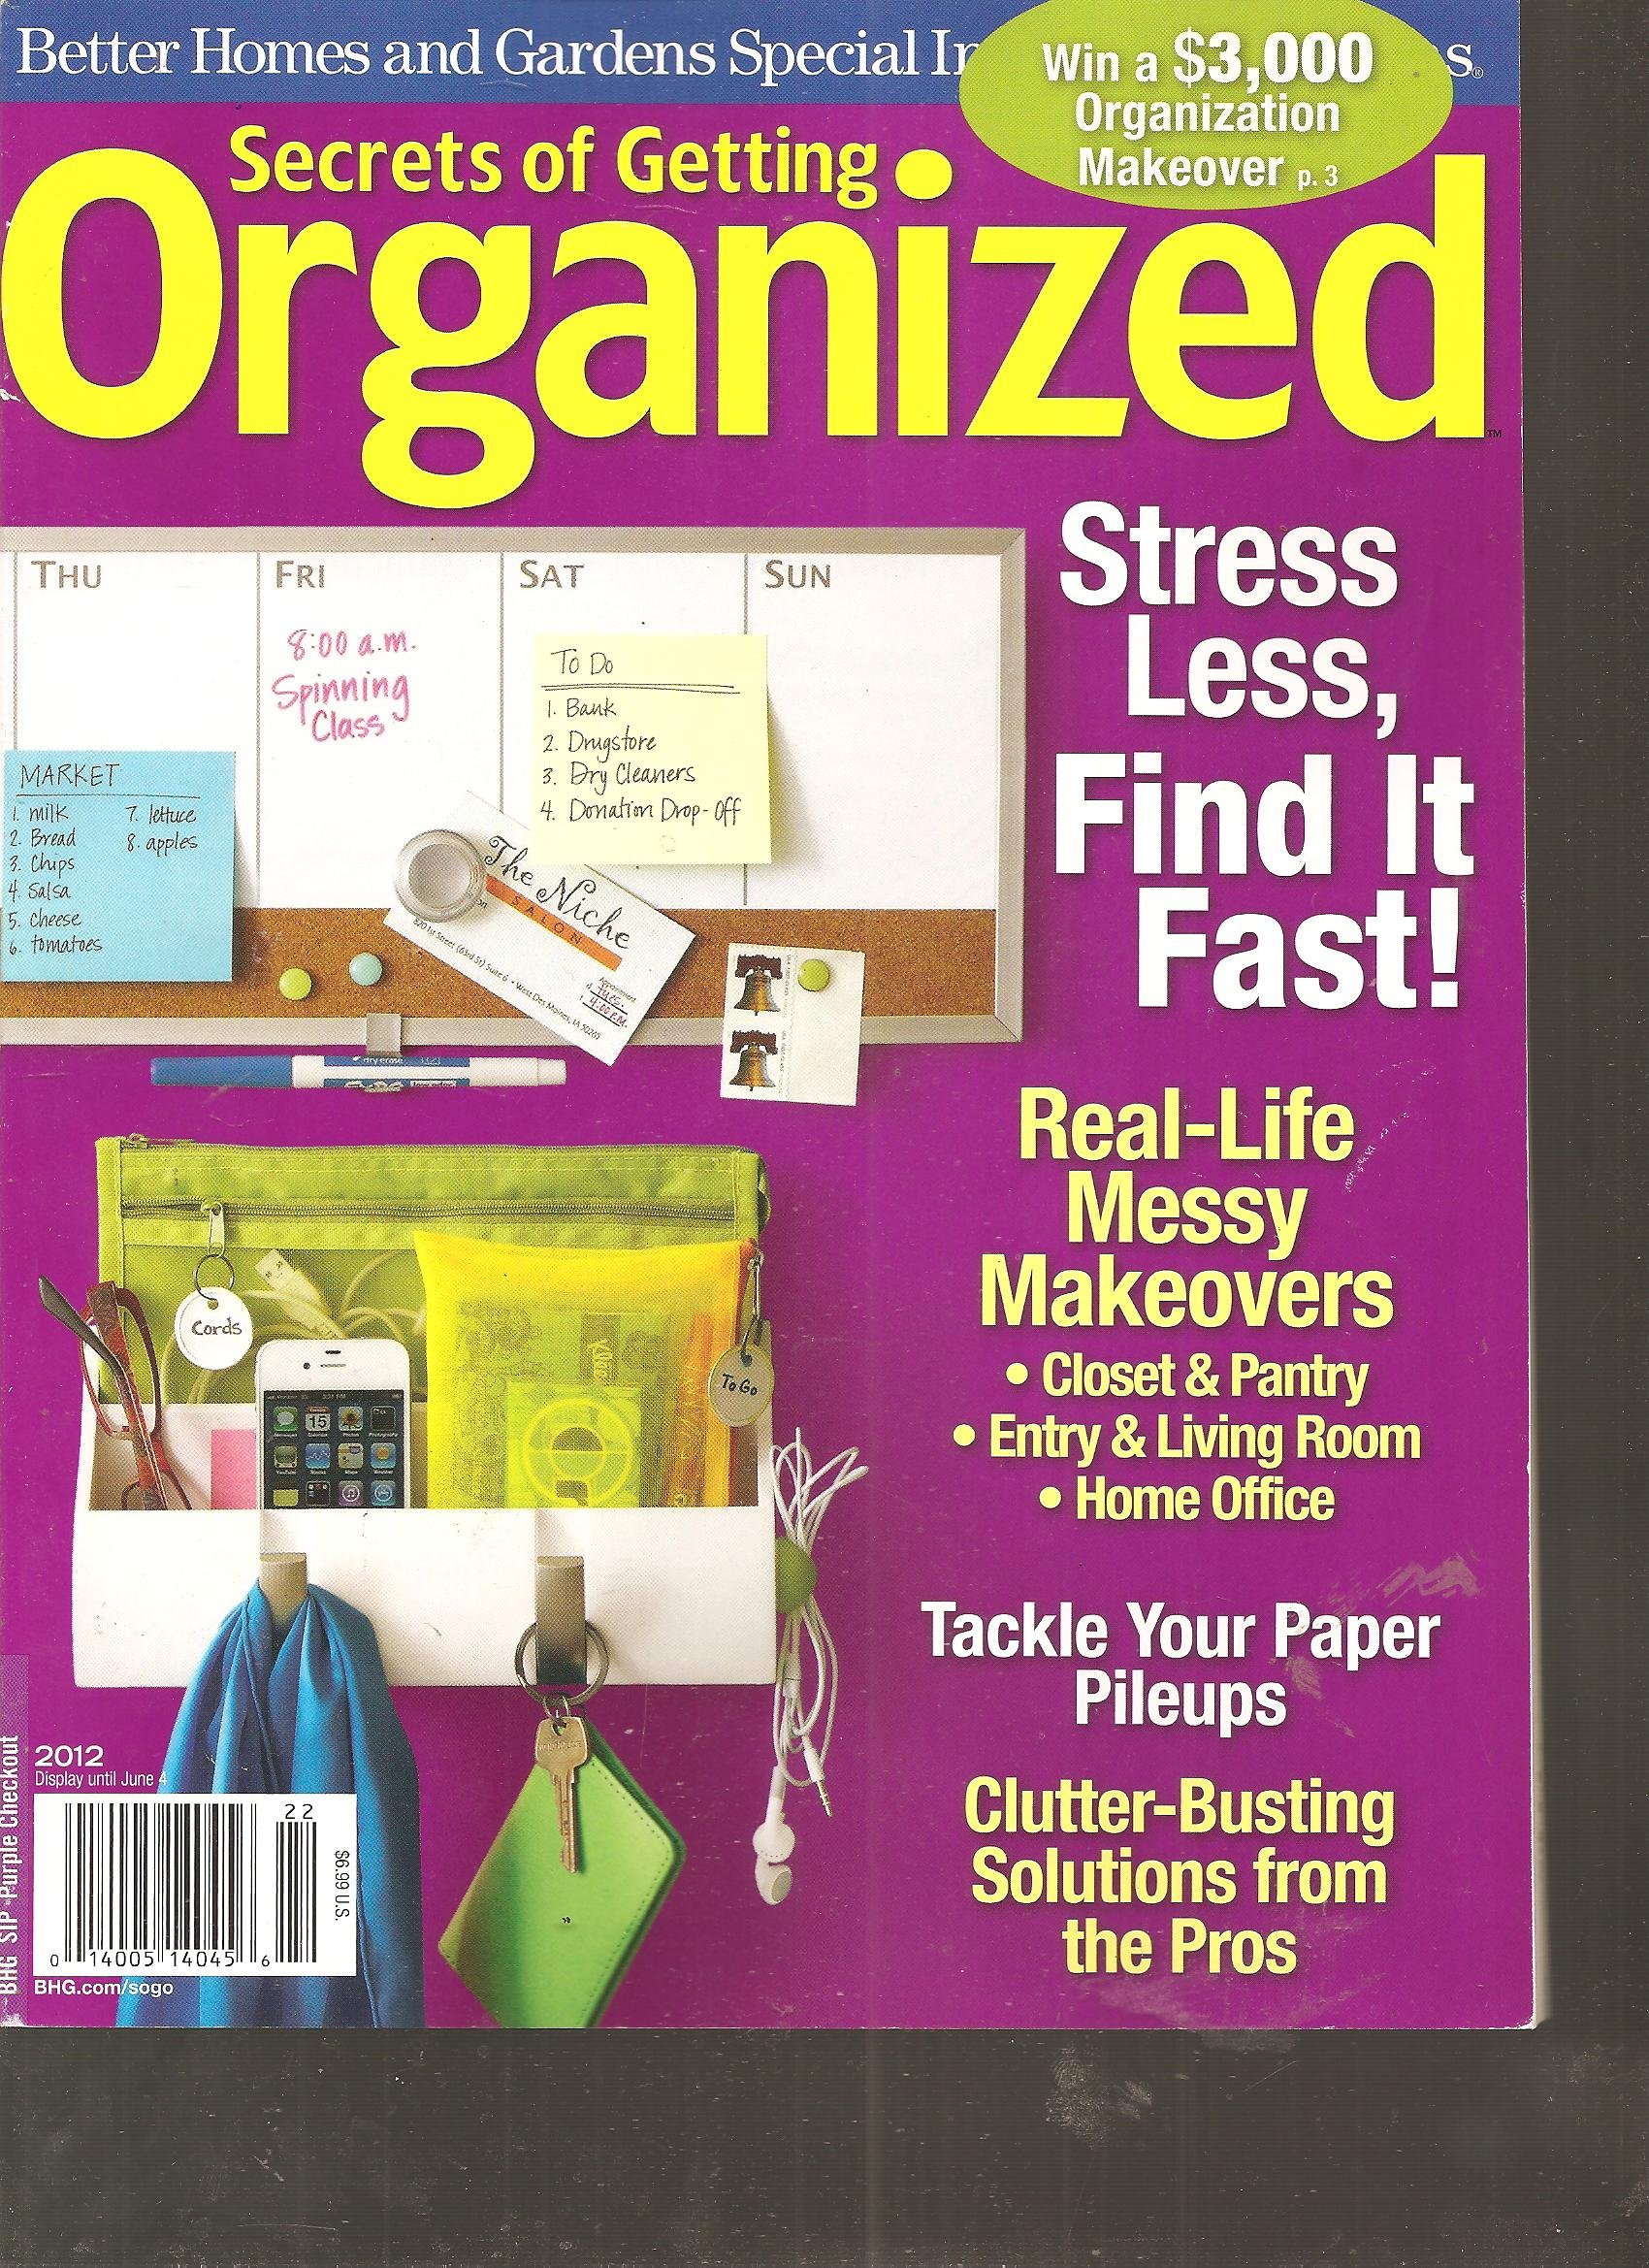 Better Homes and Gardens Special Secrets of Getting Organized Magazine  (2012) Paperback – 2012